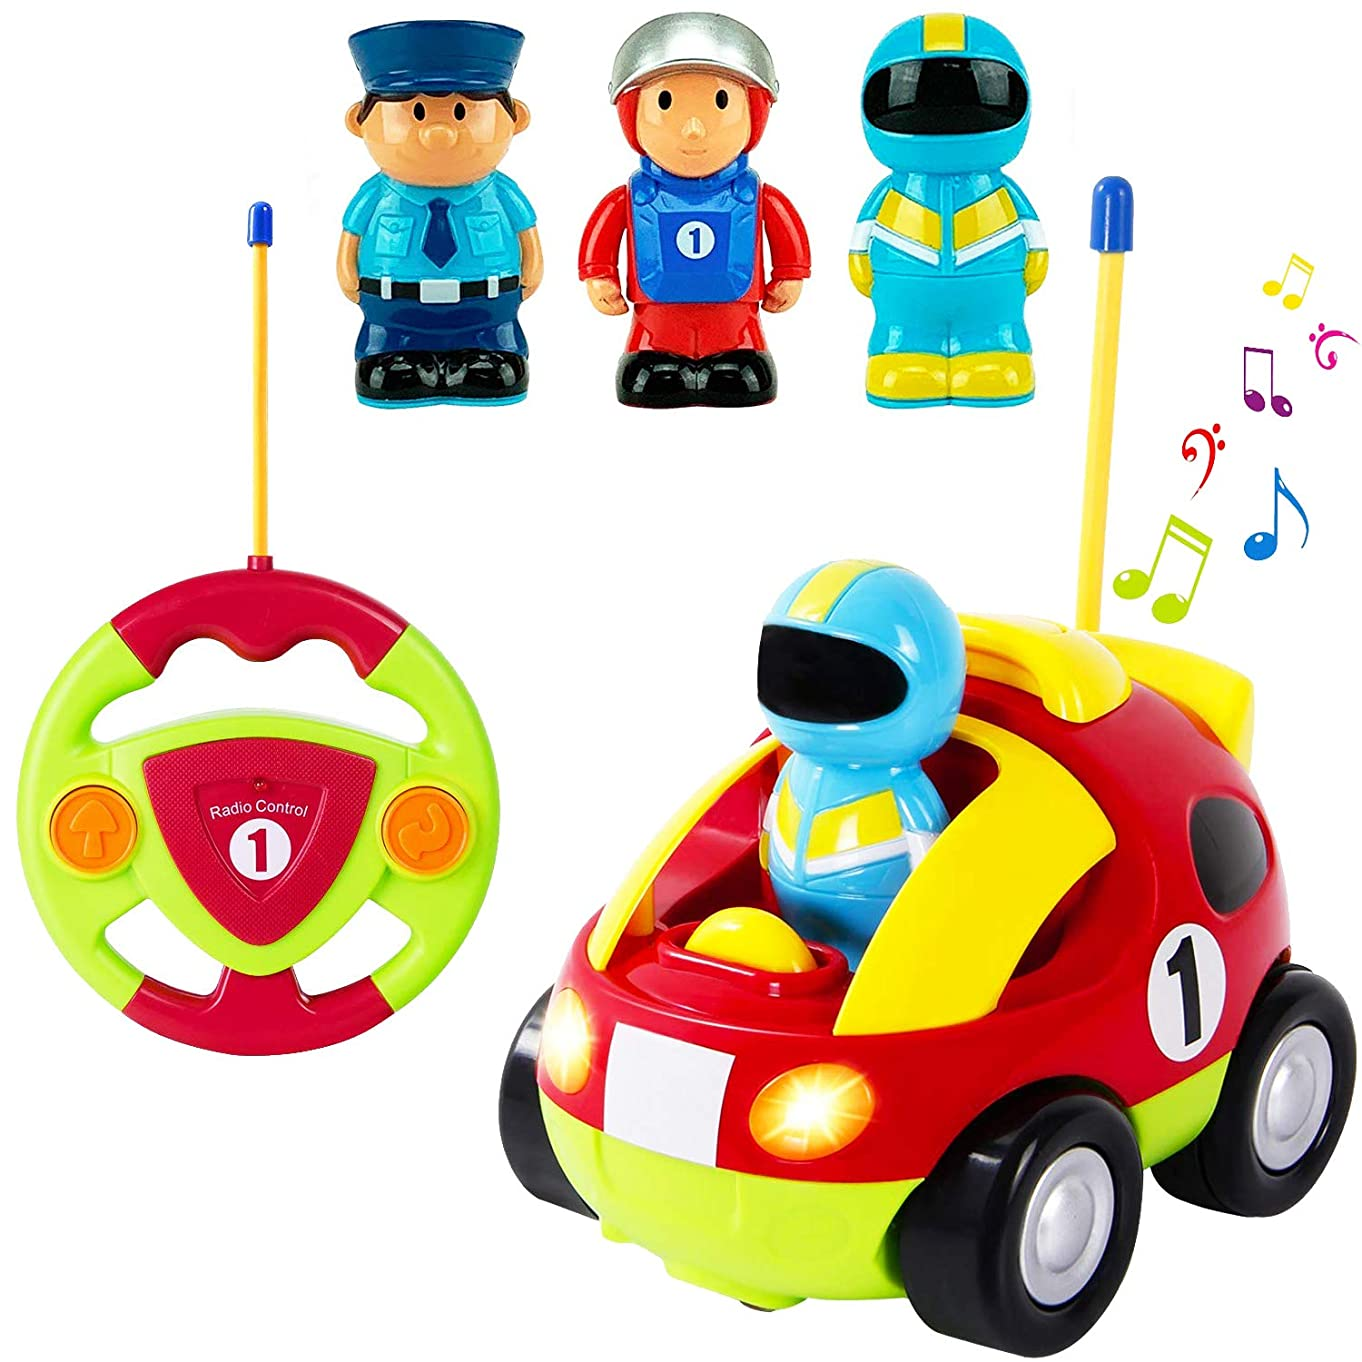 Liberty Imports Cartoon R/C Race Car Radio Control Toy for Toddlers (English Packaging) y96527091